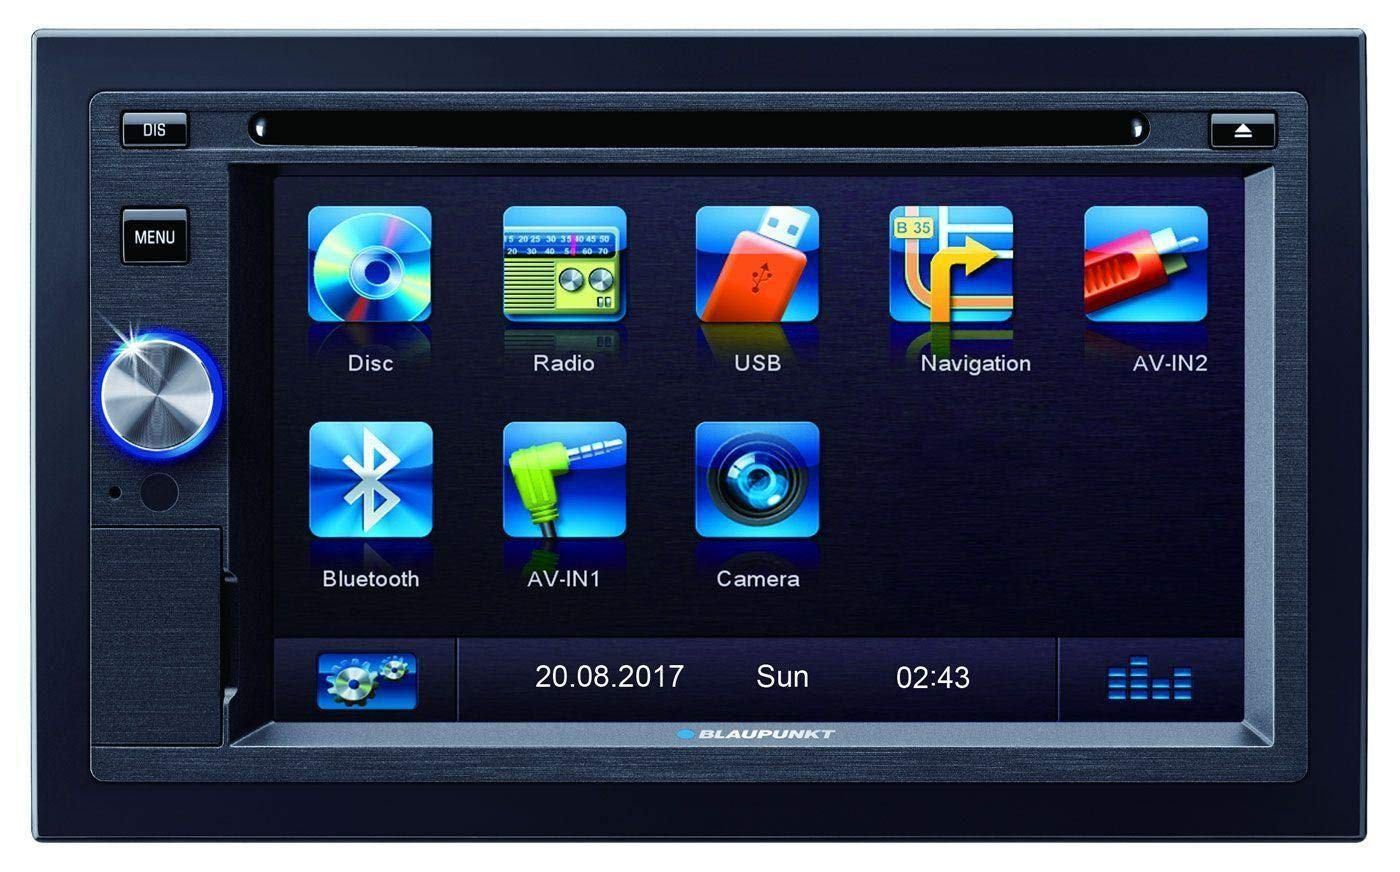 Blaupunkt-Las-Vegas-570-Autoradio-2DIN-Bluetooth-Freisprechen-Audio-DVD-CD-USB-SD-AUX-10-Band-EQ-Anschluss-Lenkradfernbedienung-IR-Fernbedienung-4x-45W